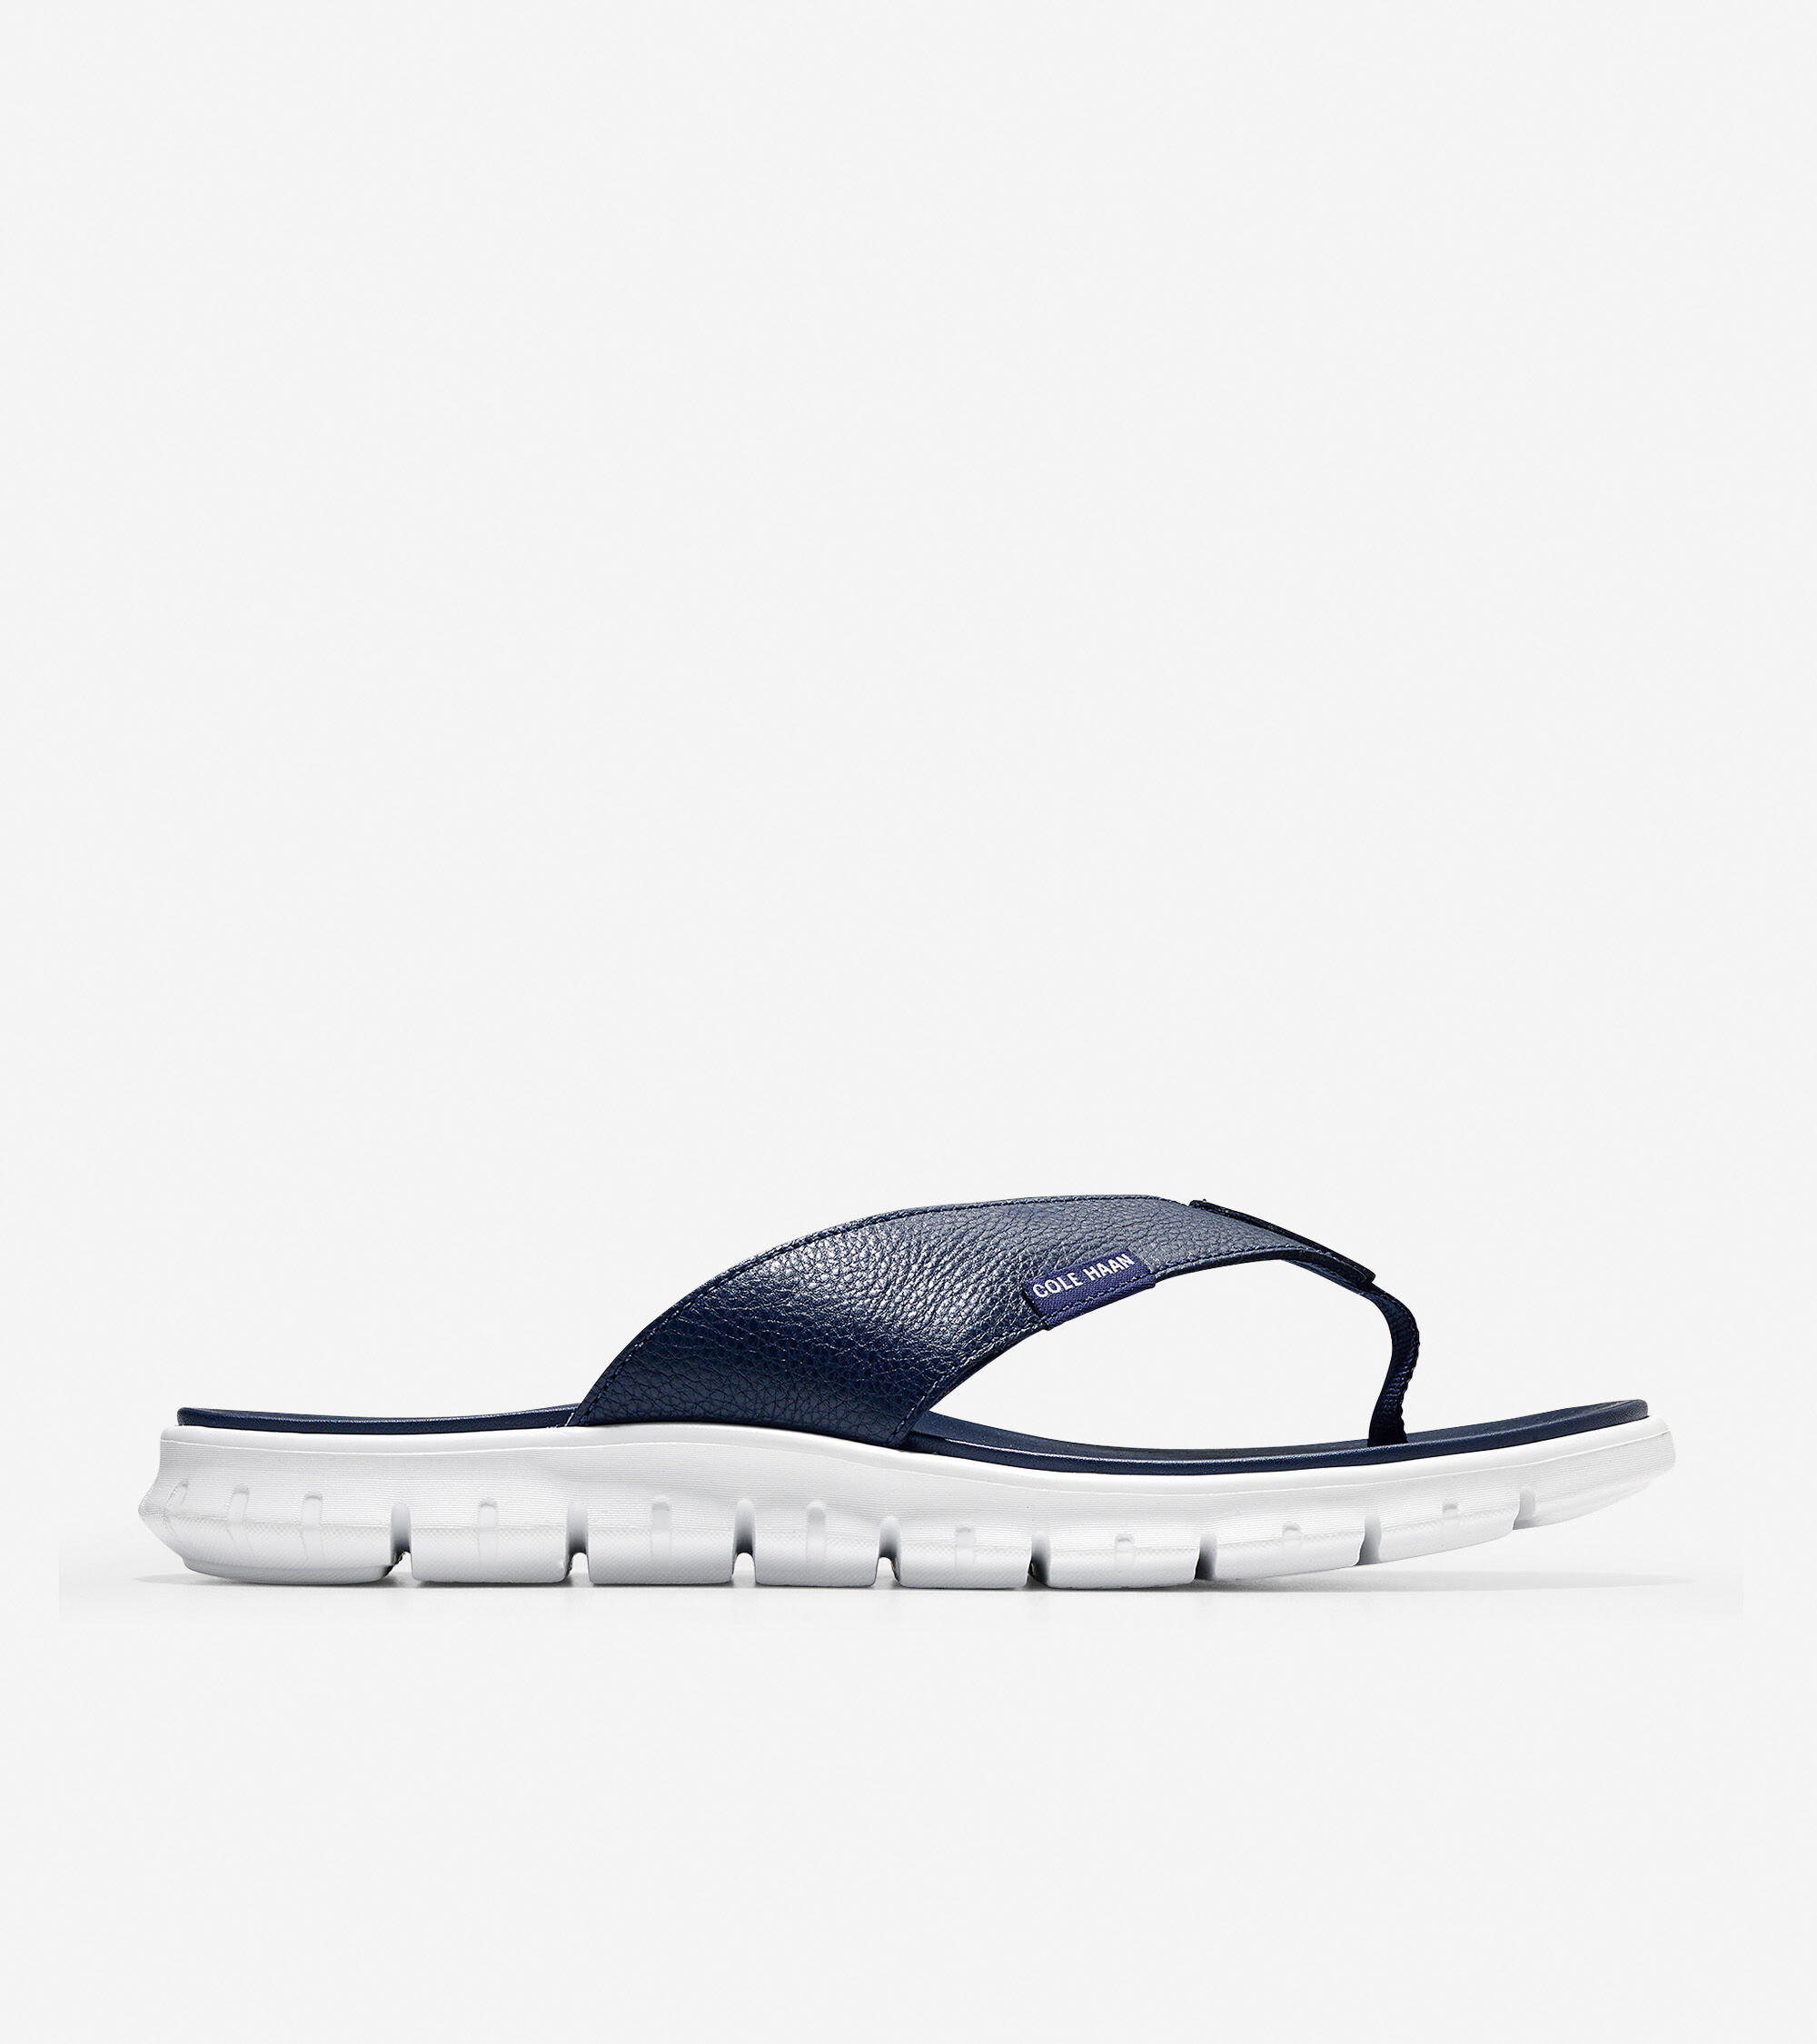 Thong Sandal in Marine Blue Leather